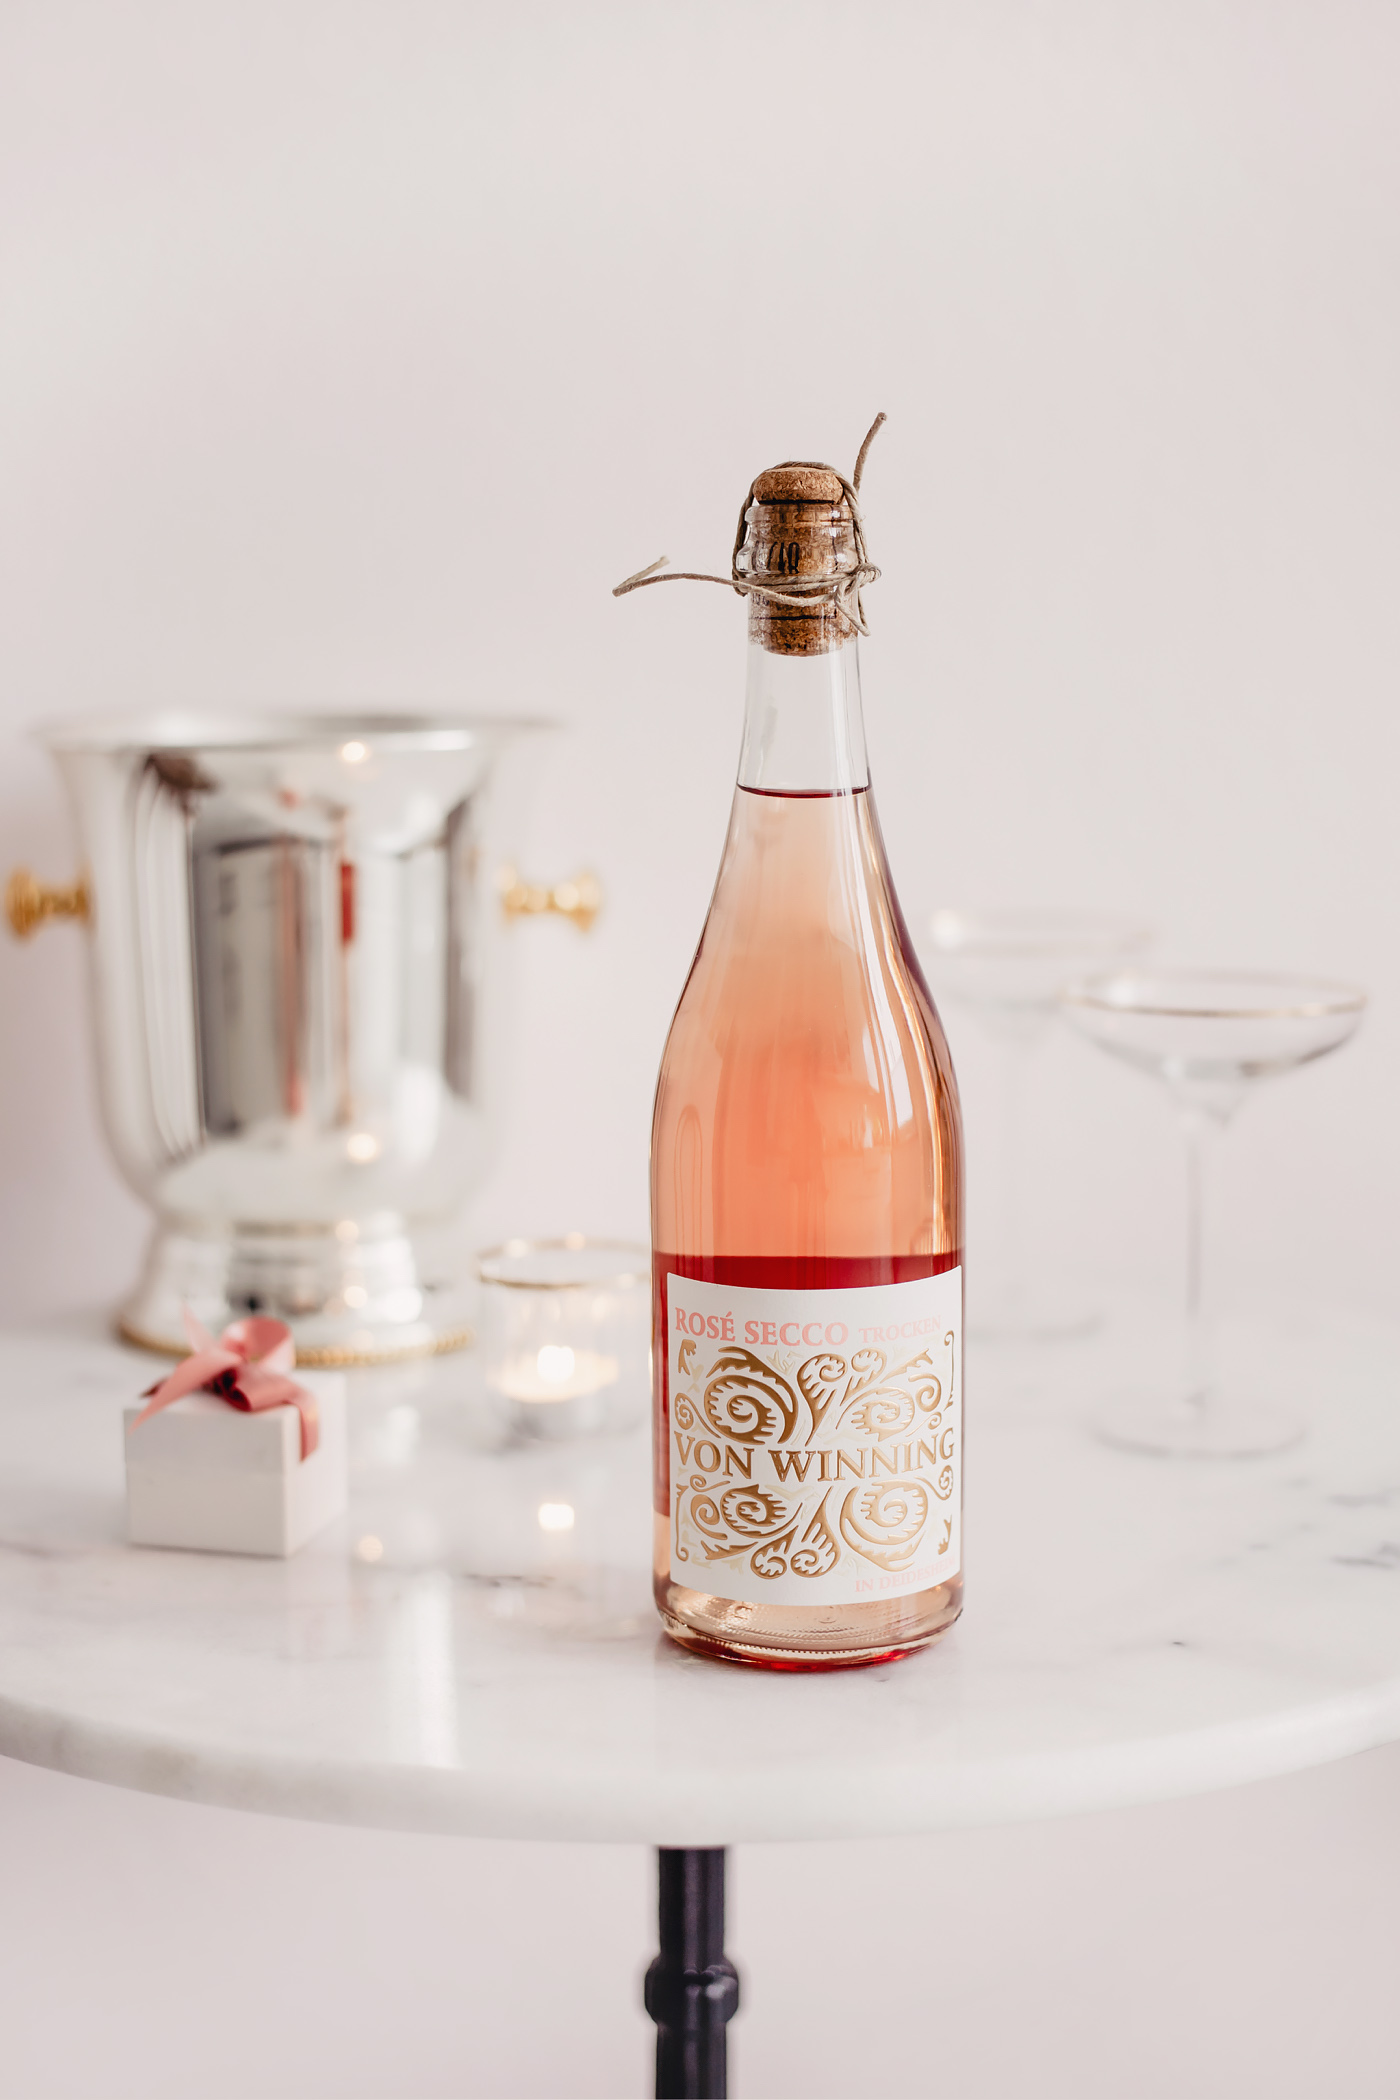 rose secco von winning